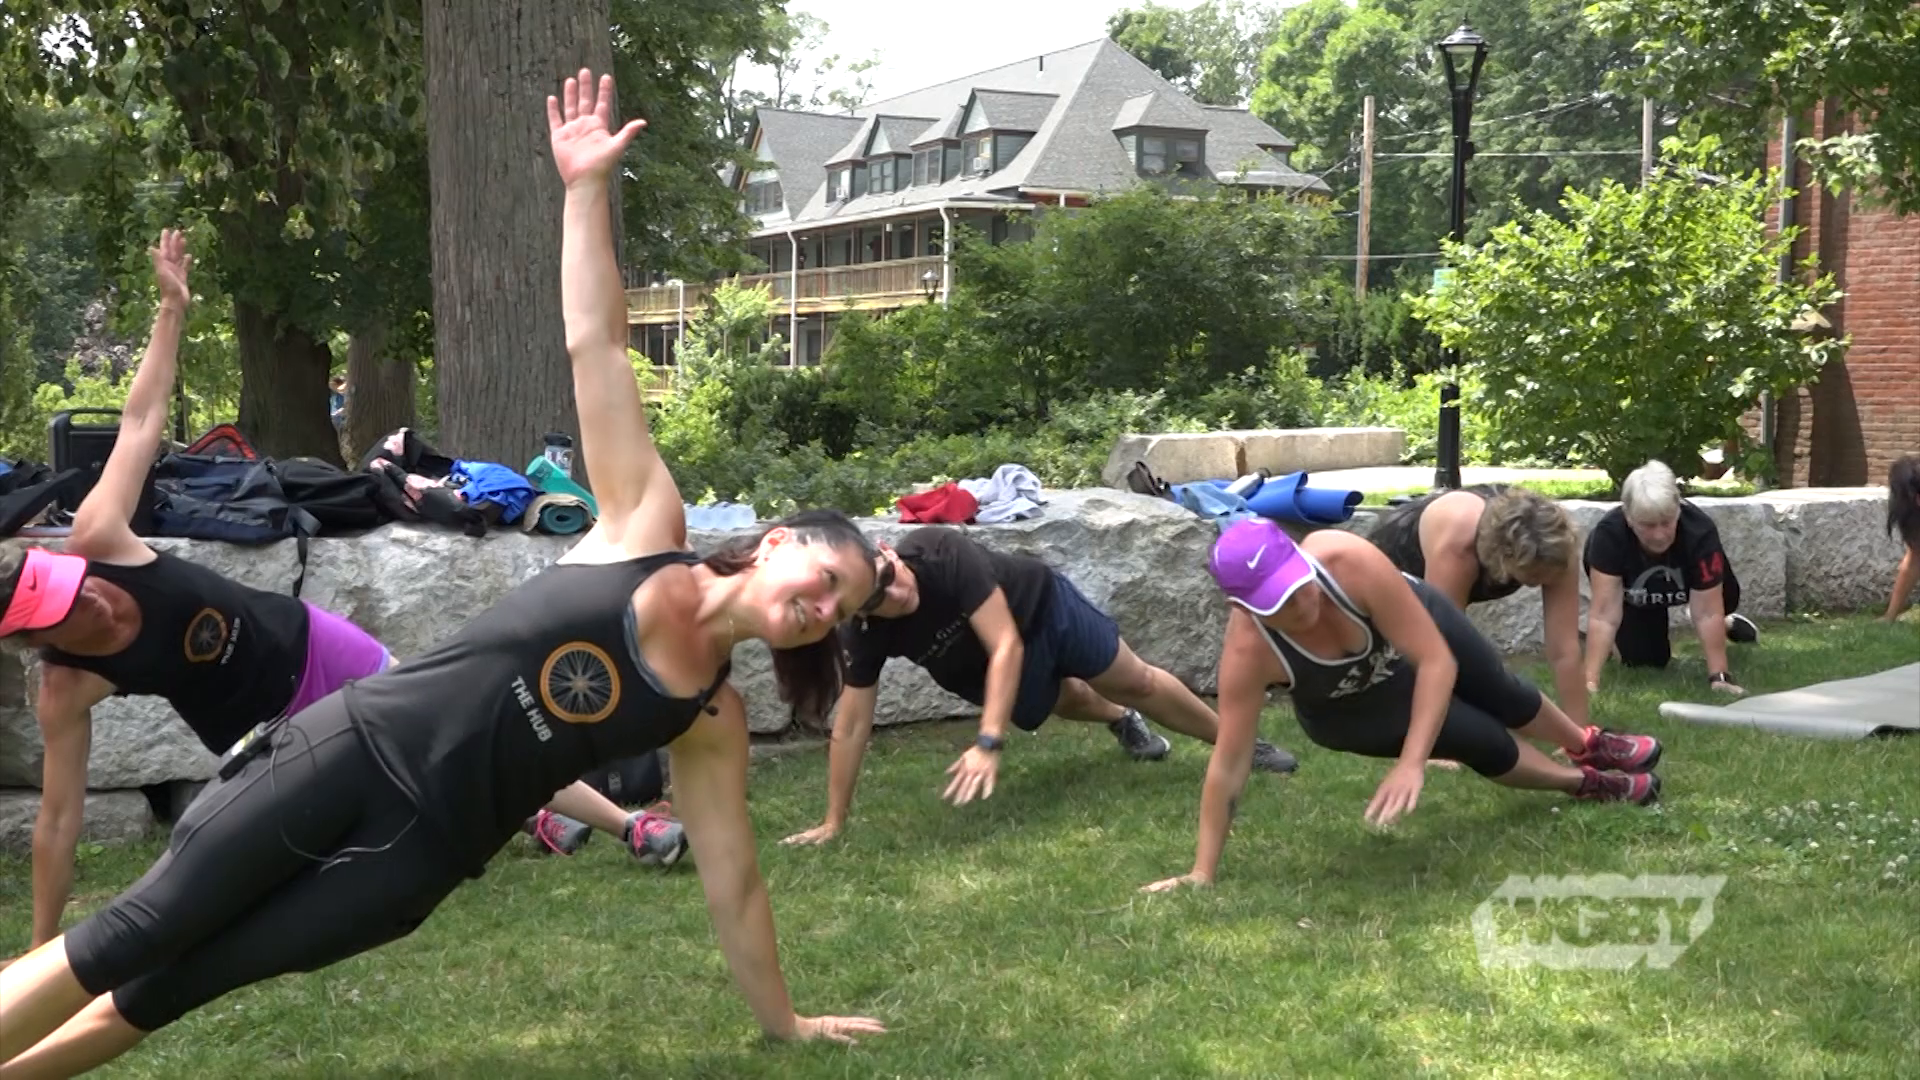 Northampton is motivating residents to get outside and get active with free fitness classes in the city's parks this summer.